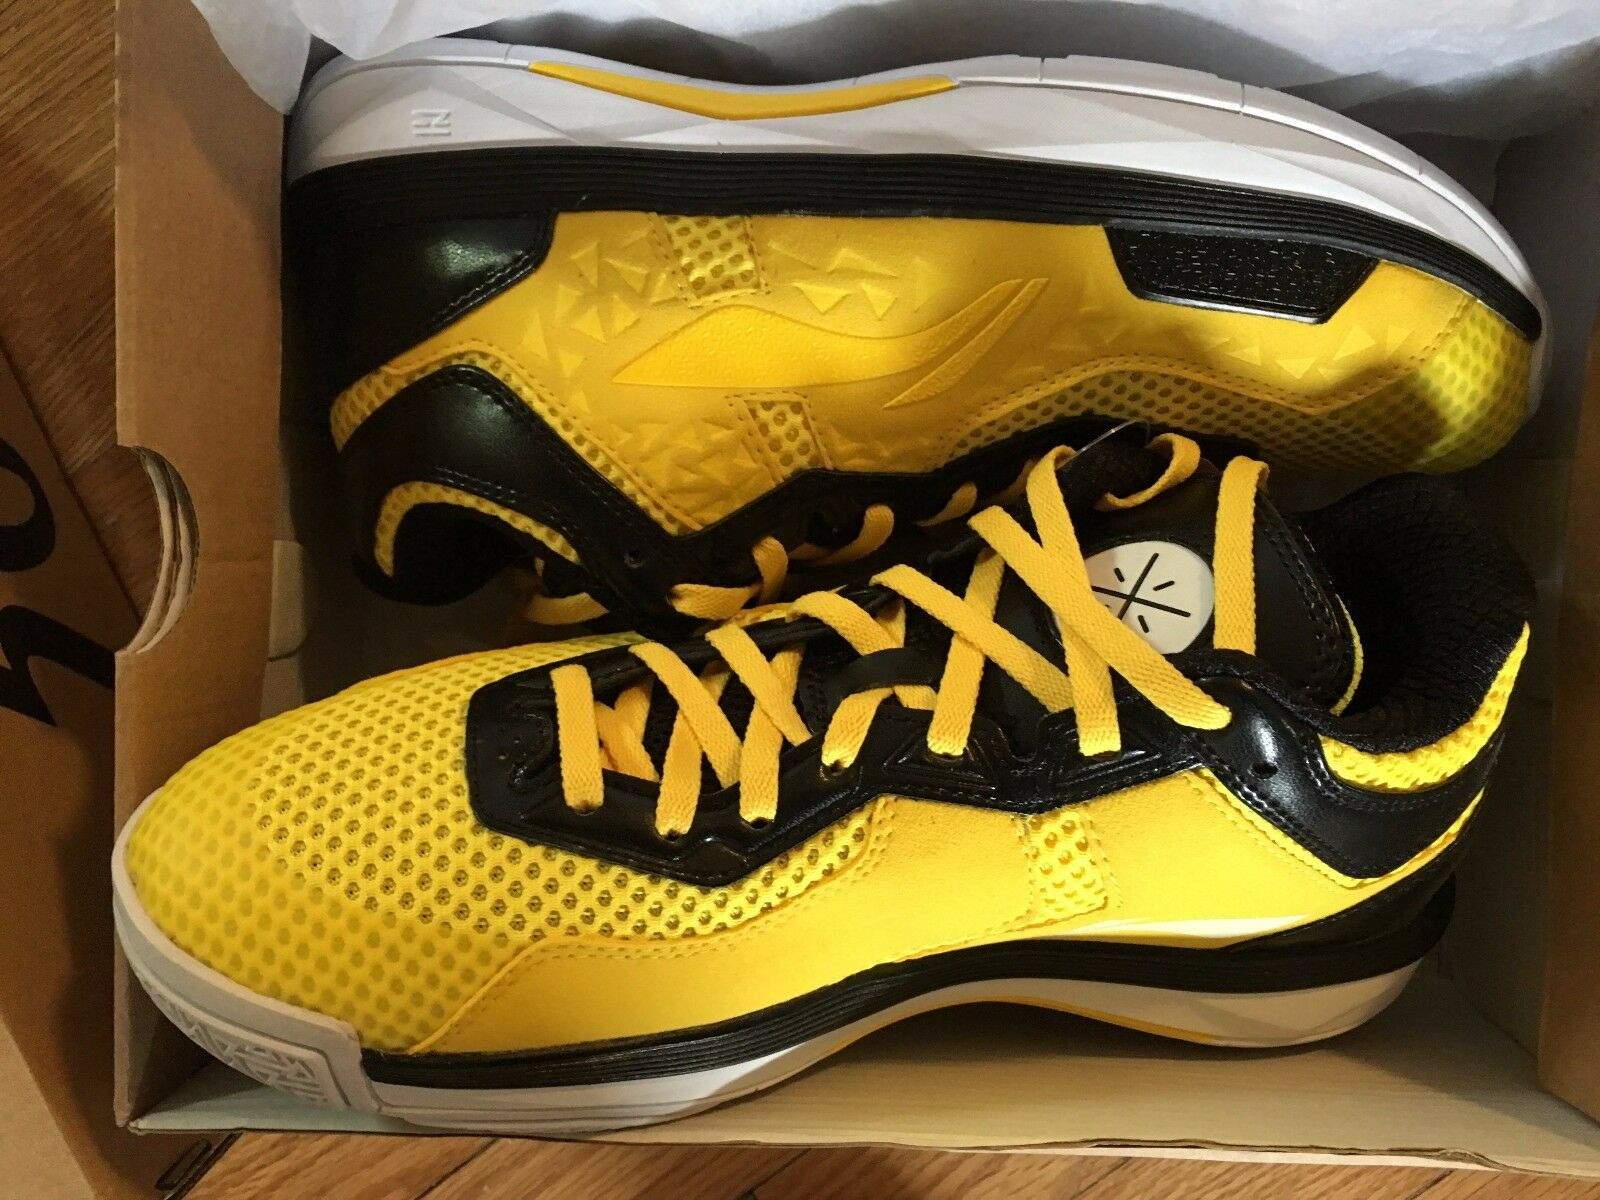 Li-Ning Way of Wade All City 4 Caution giallo giallo giallo Heat Dimensione 10.5 DS NEW 29c597